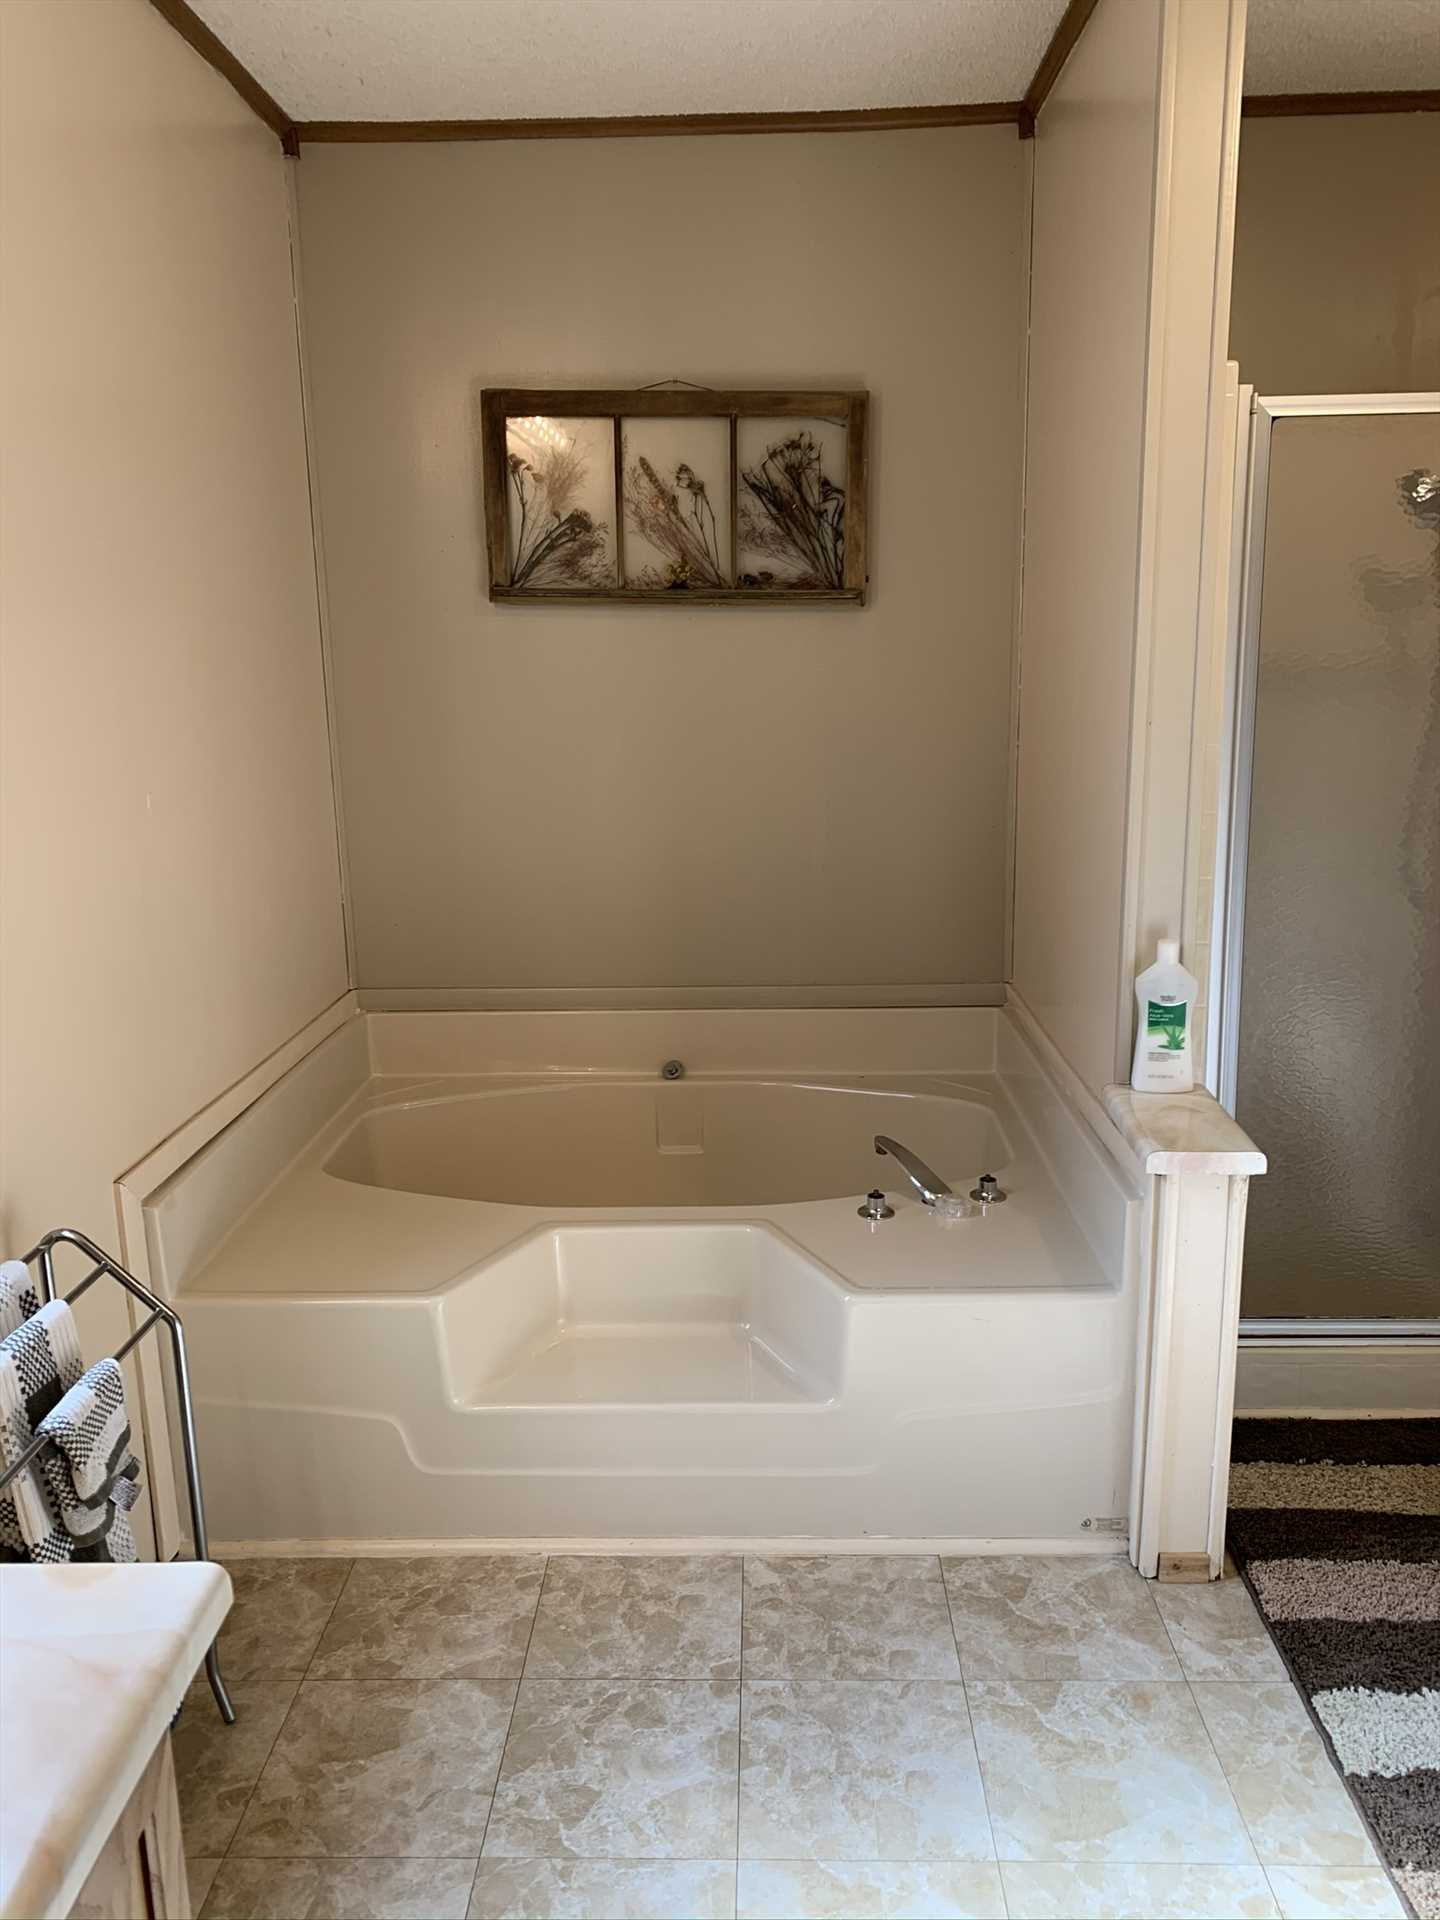 Slow, soothing soak, or quick cleanup? The master bath has you covered both ways, with its garden tub and shower stall.